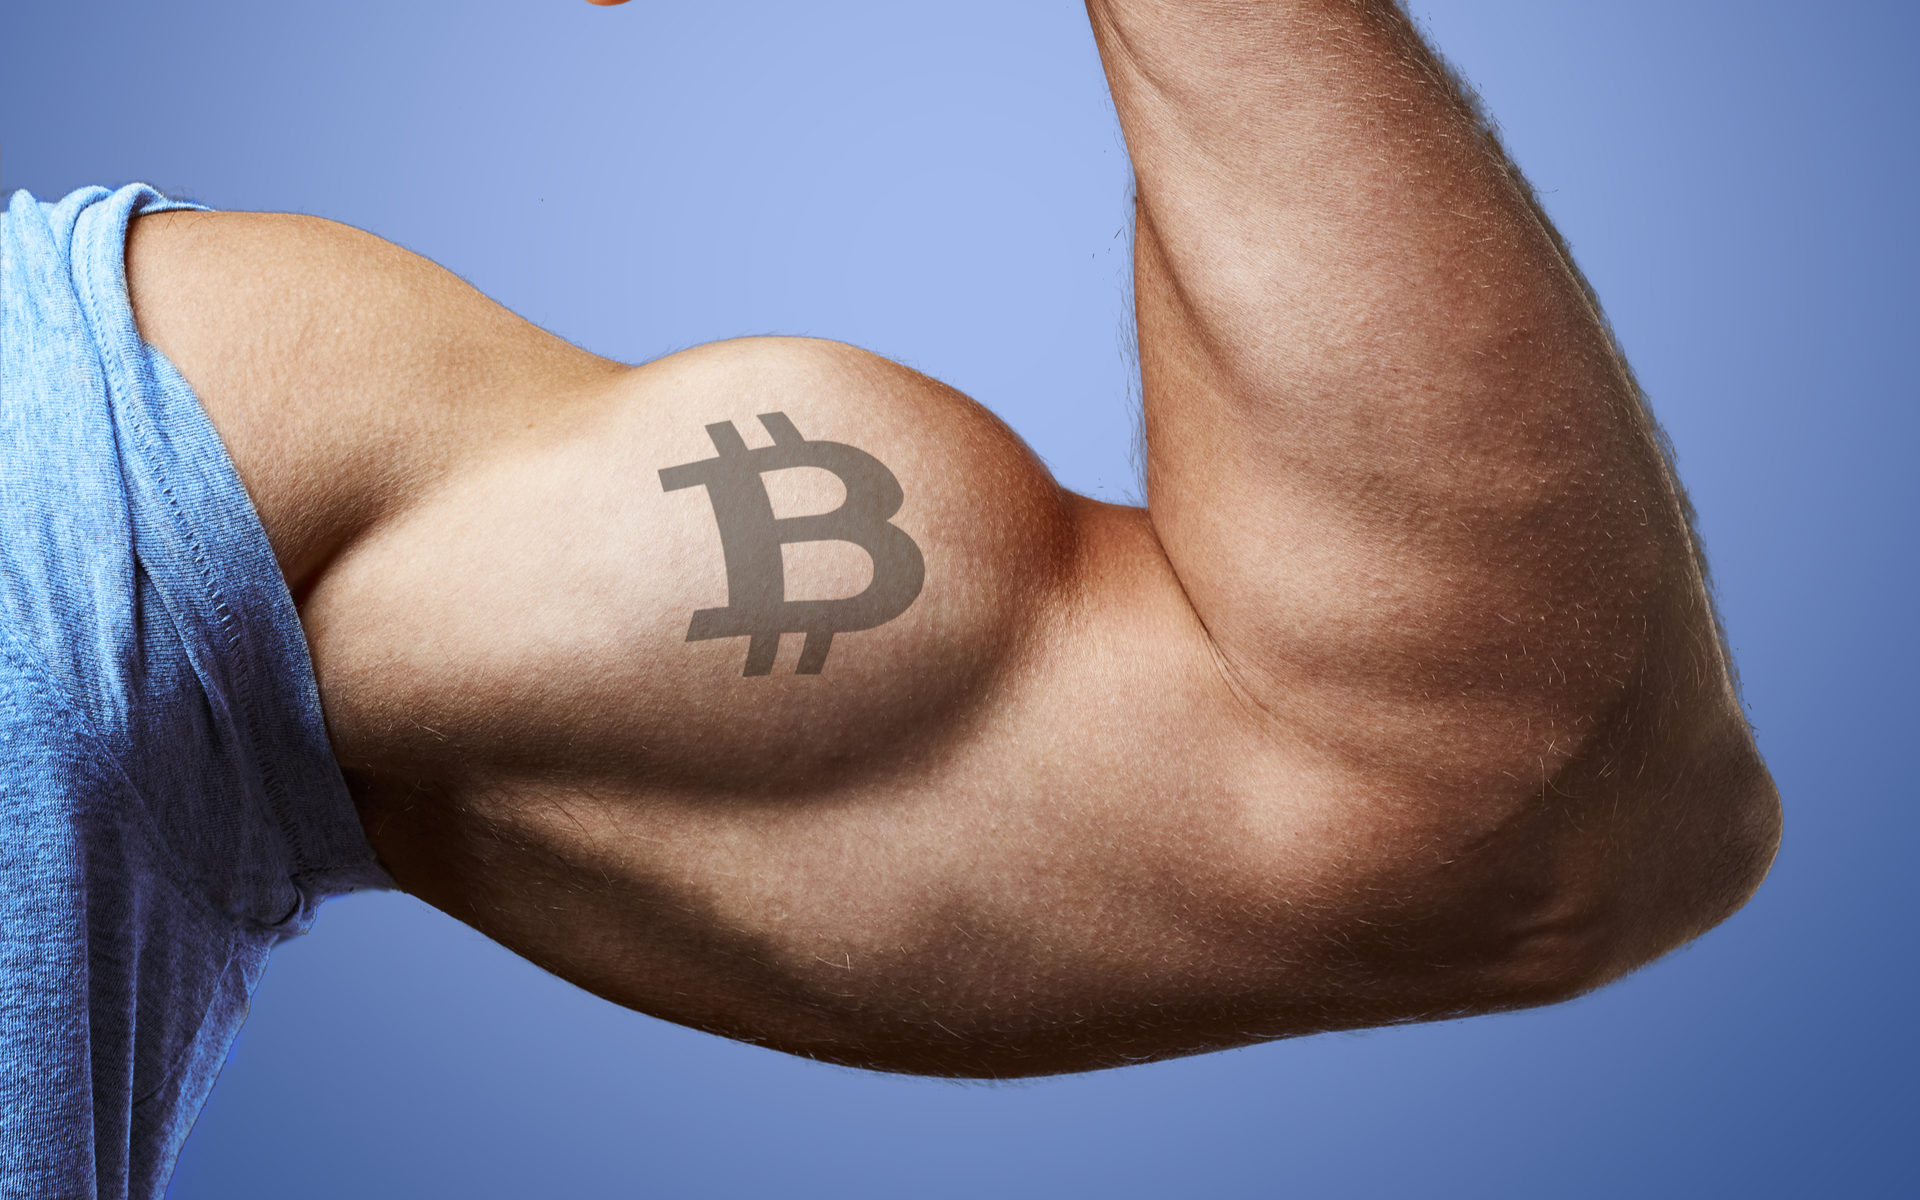 China could weaponize bitcoin